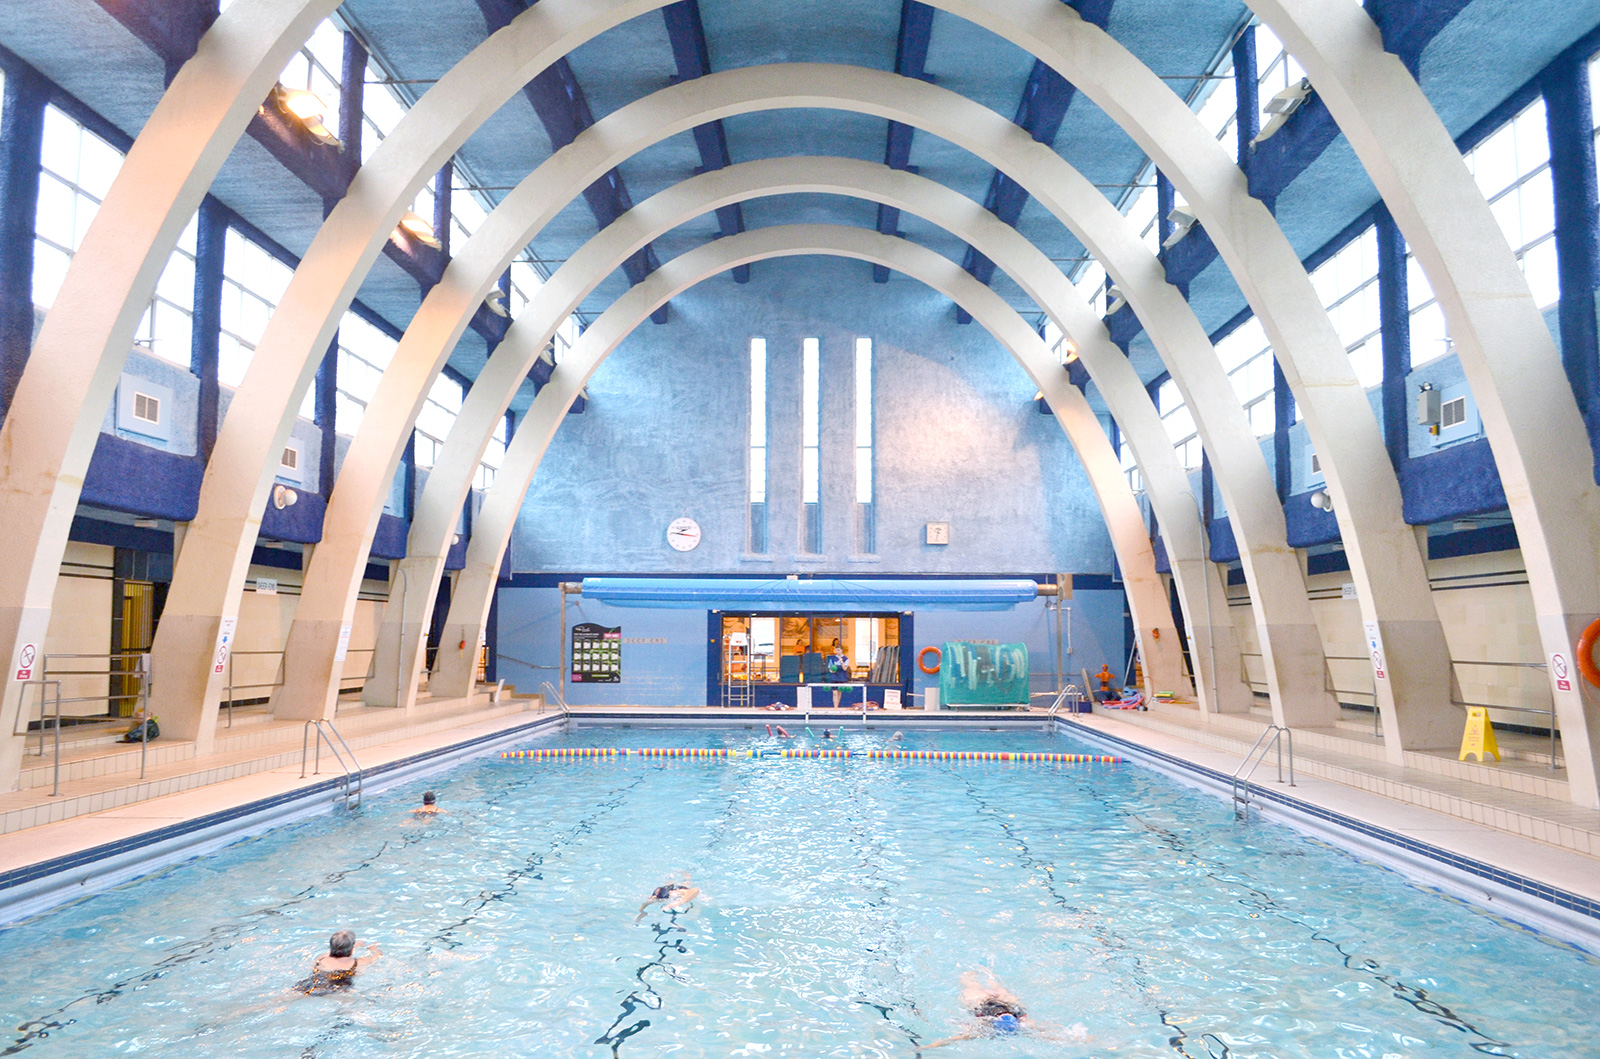 British swimming pools - Mount Baths